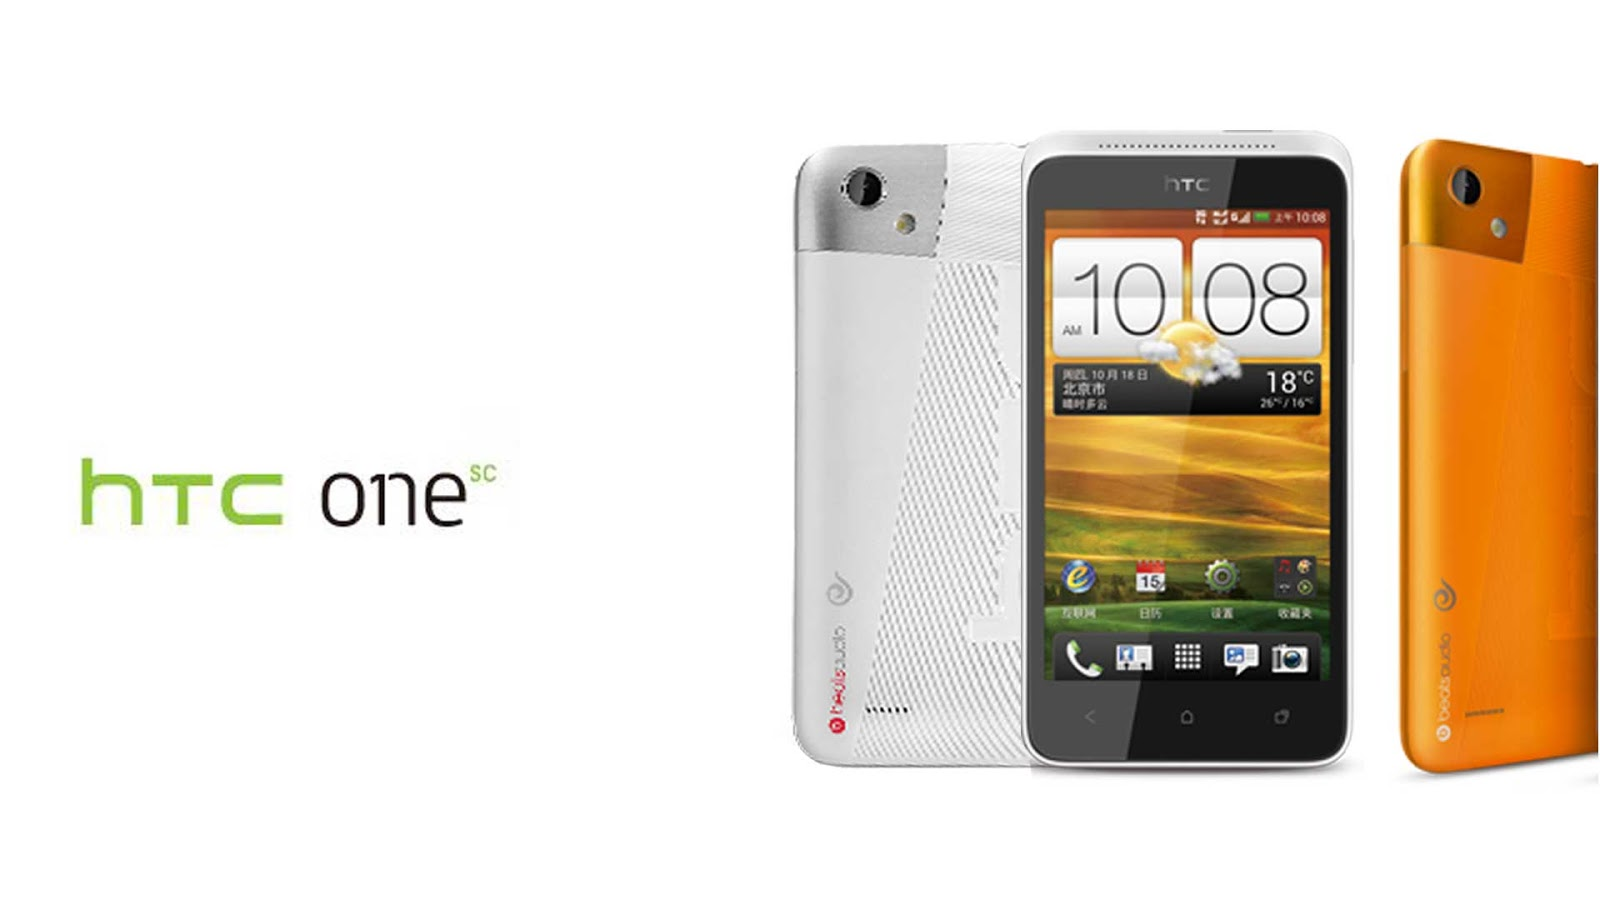 Simple name for a great phone NEW HTC ONE